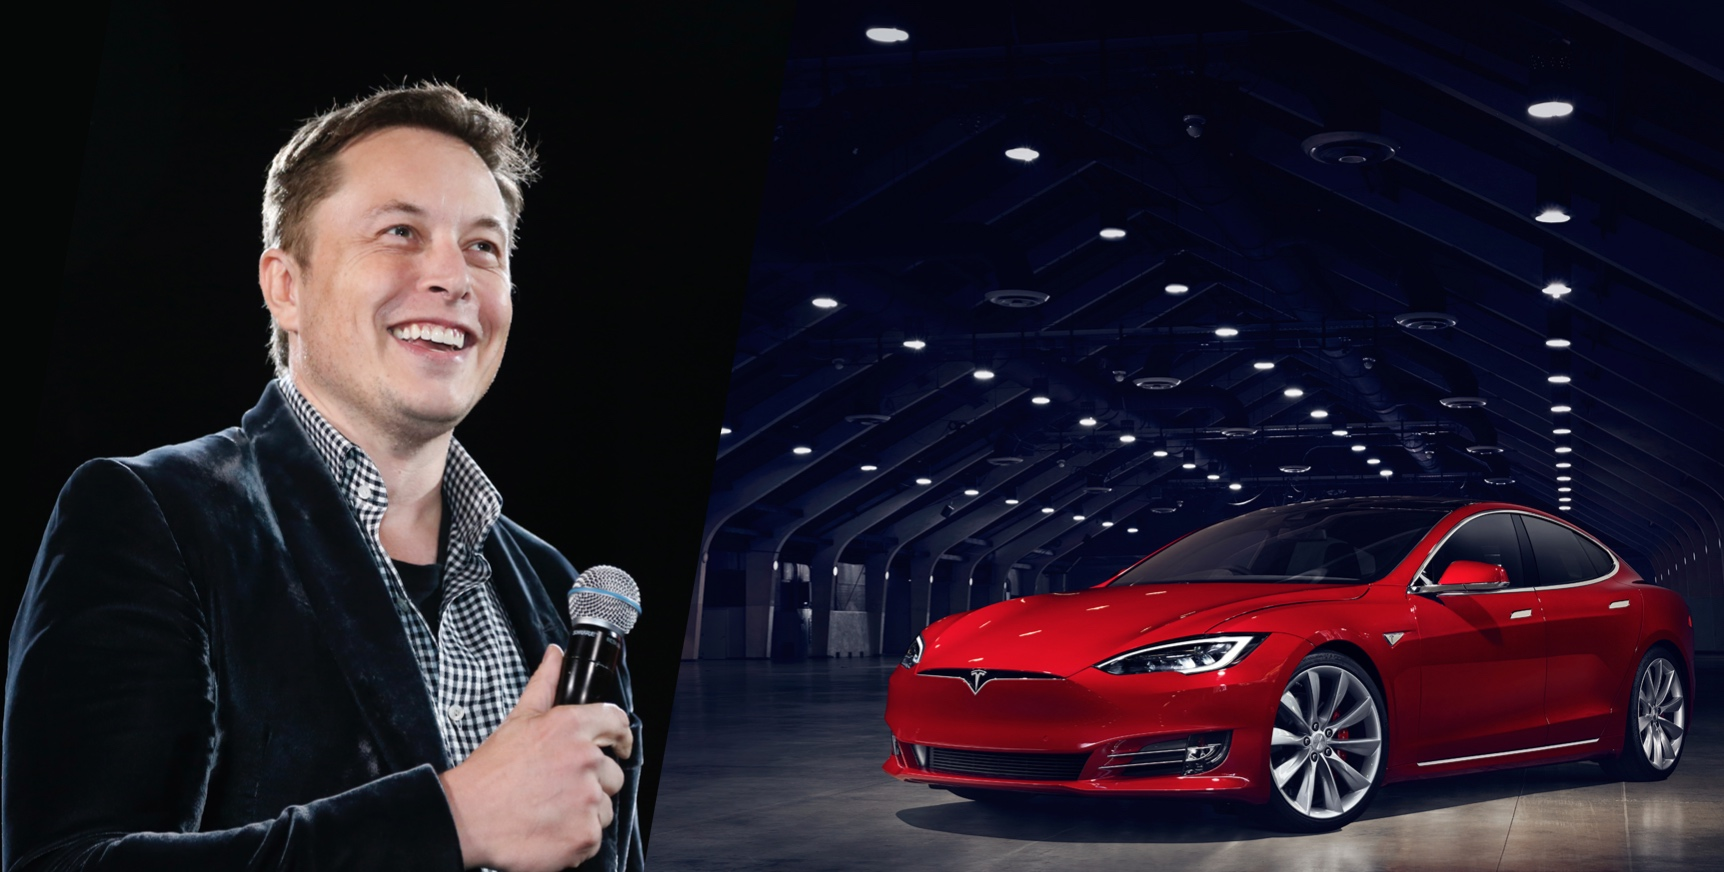 Elon Musk Delivery Numbers Q1 2017